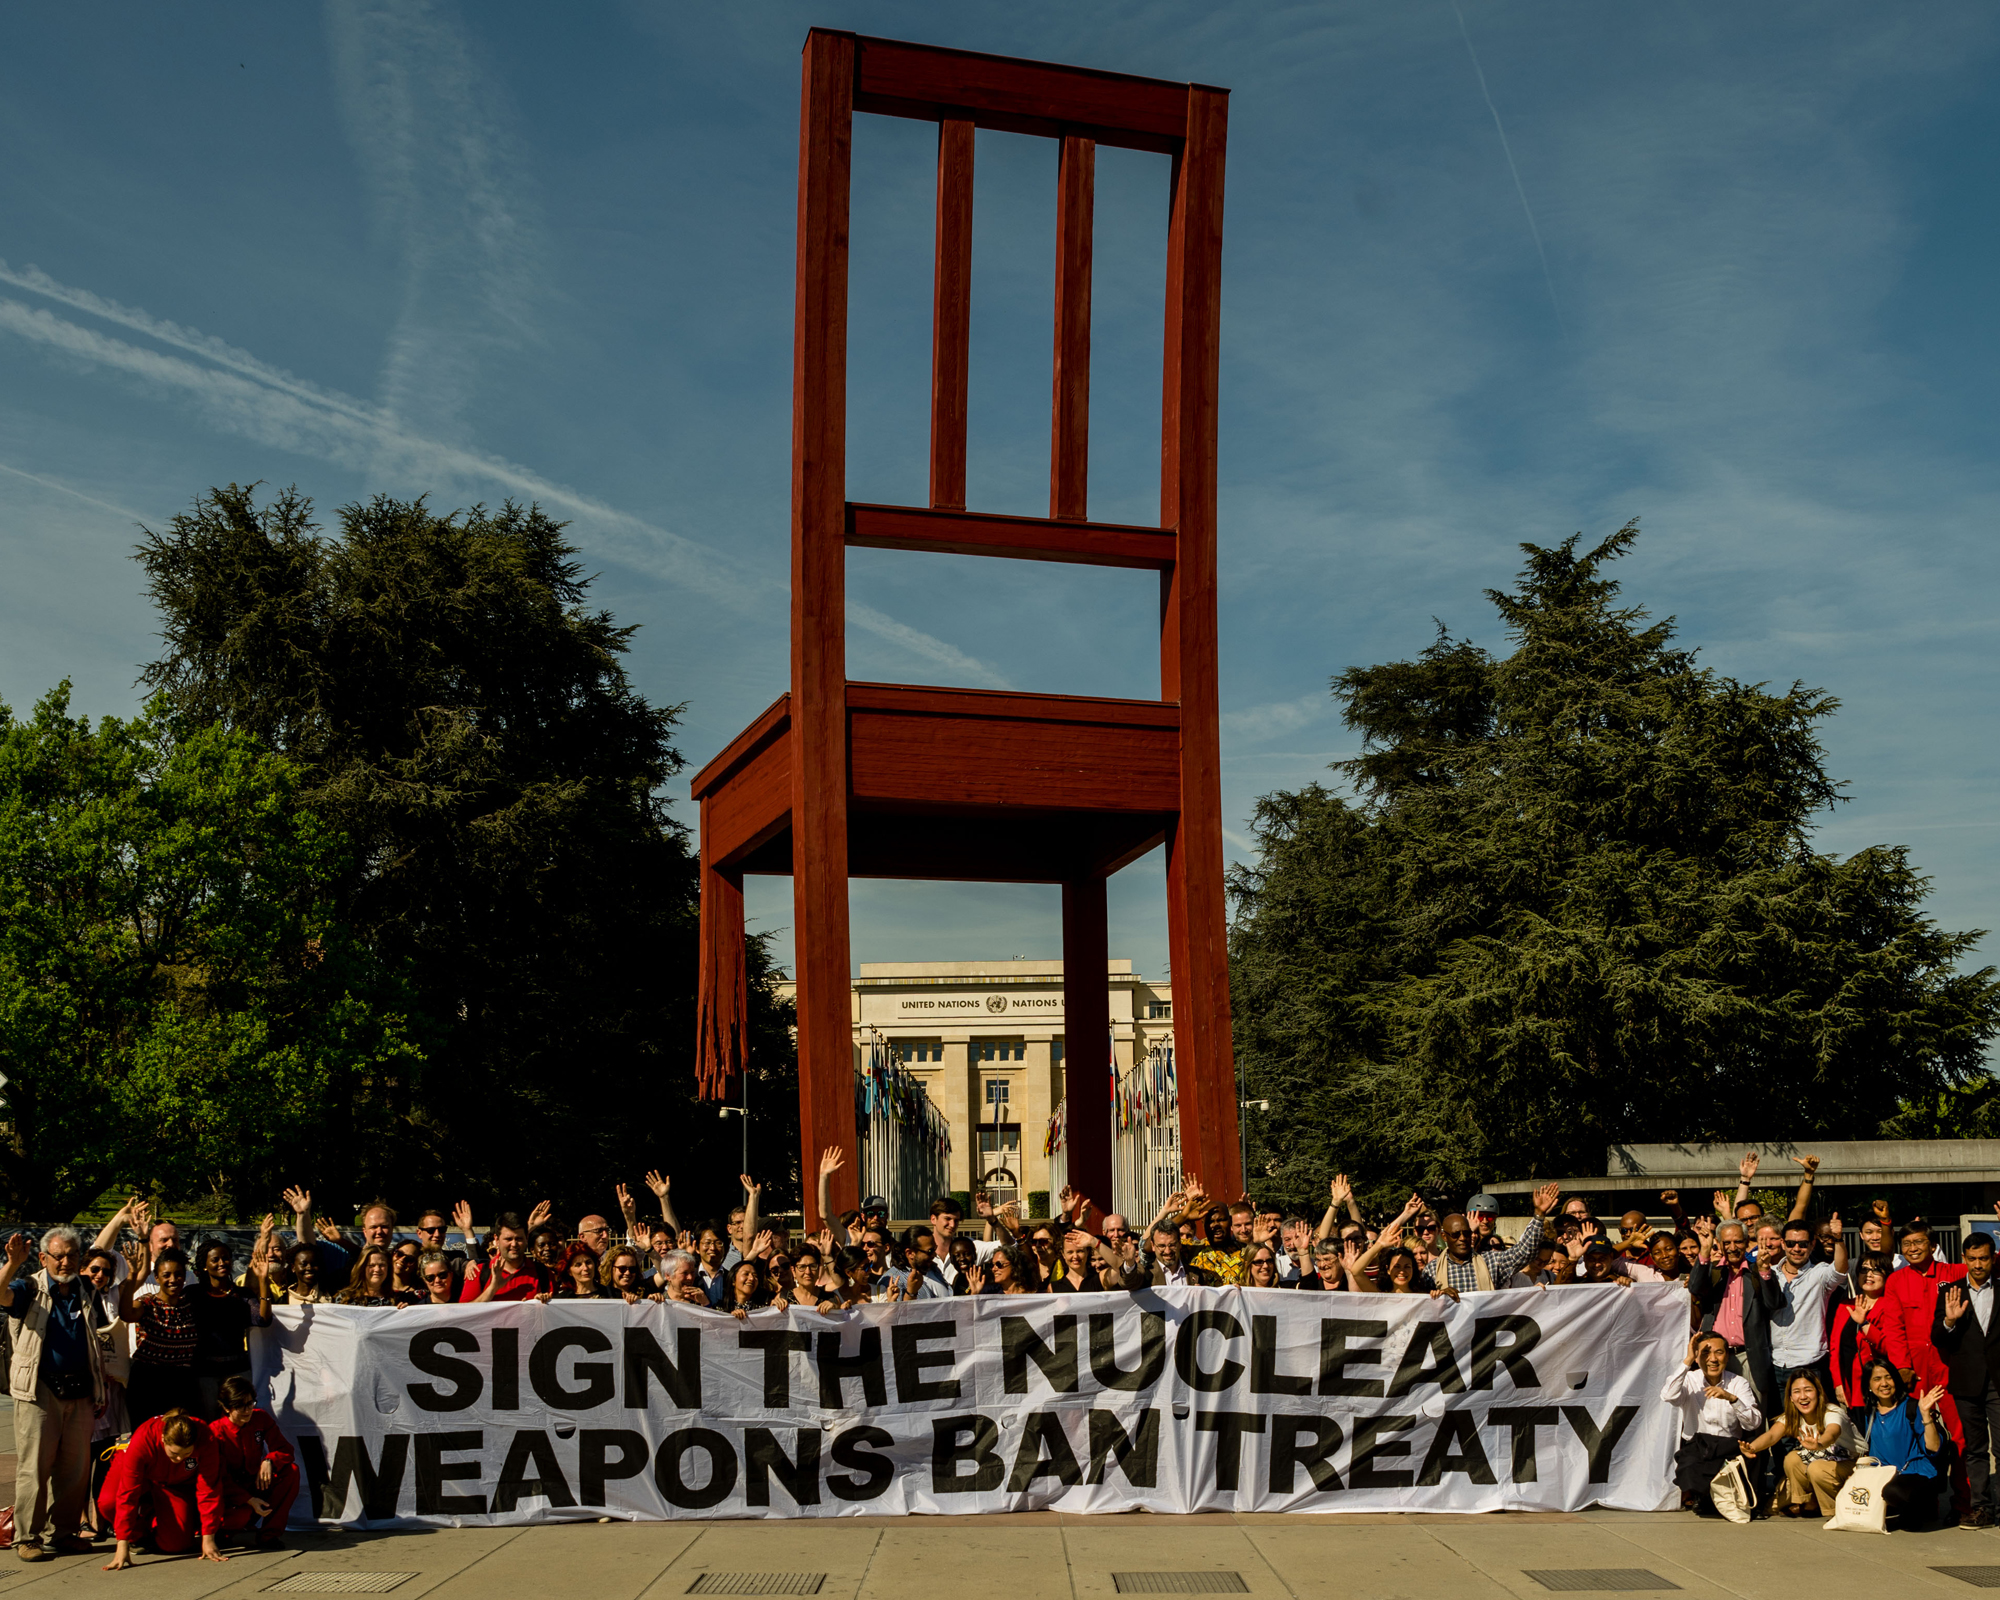 CPE speaks out for peace, disarmament in local and global spaces